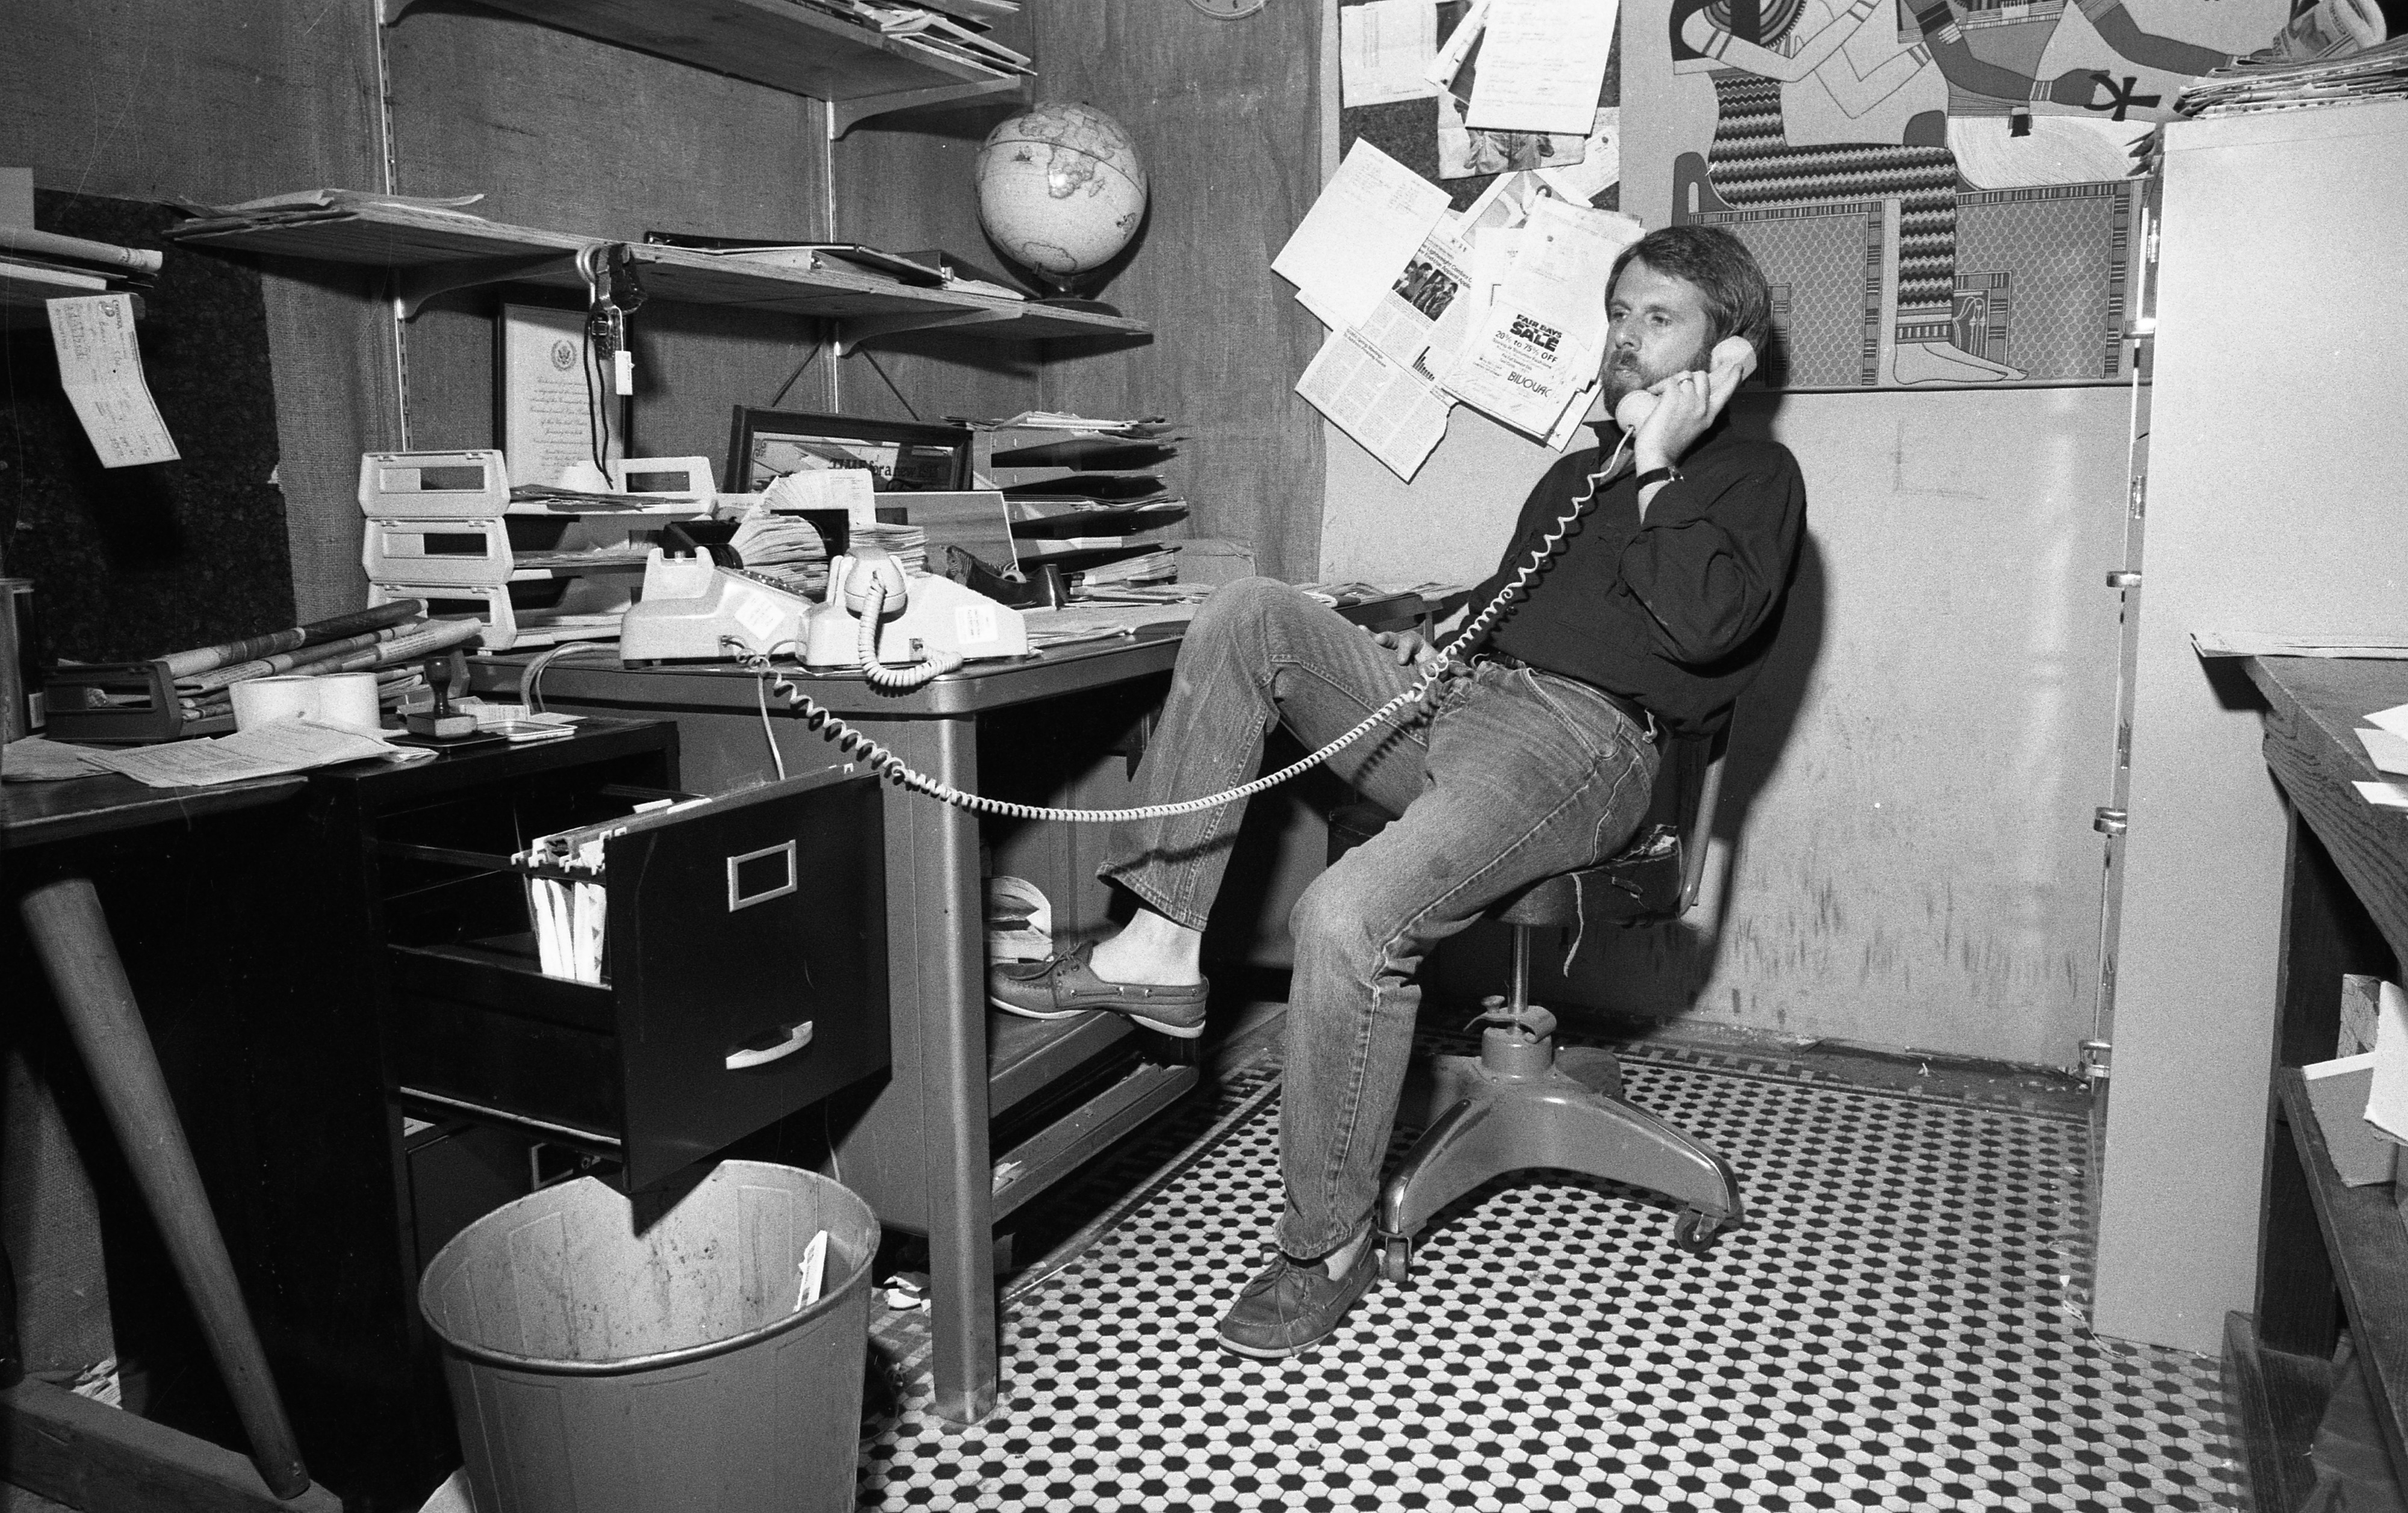 Bivouac Owner Ed Davidson's Office In Nickels Arcade Store, July 1984 image